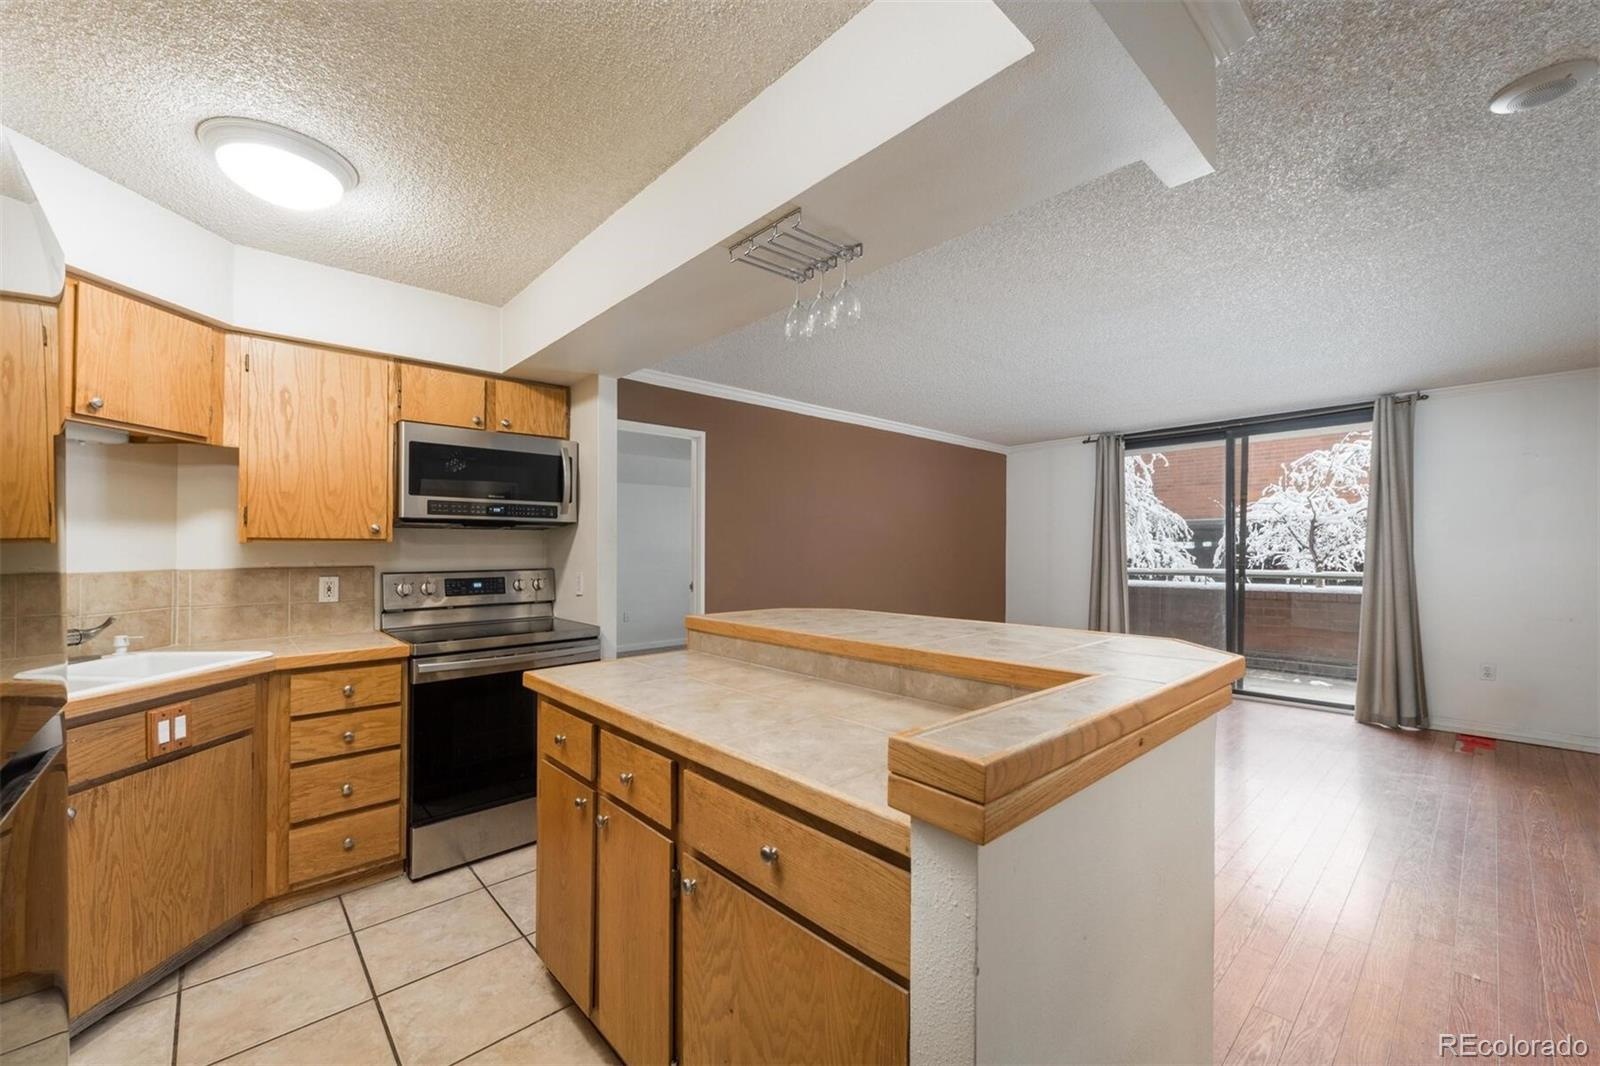 1301 Speer Boulevard Unit 202, Denver CO 80204